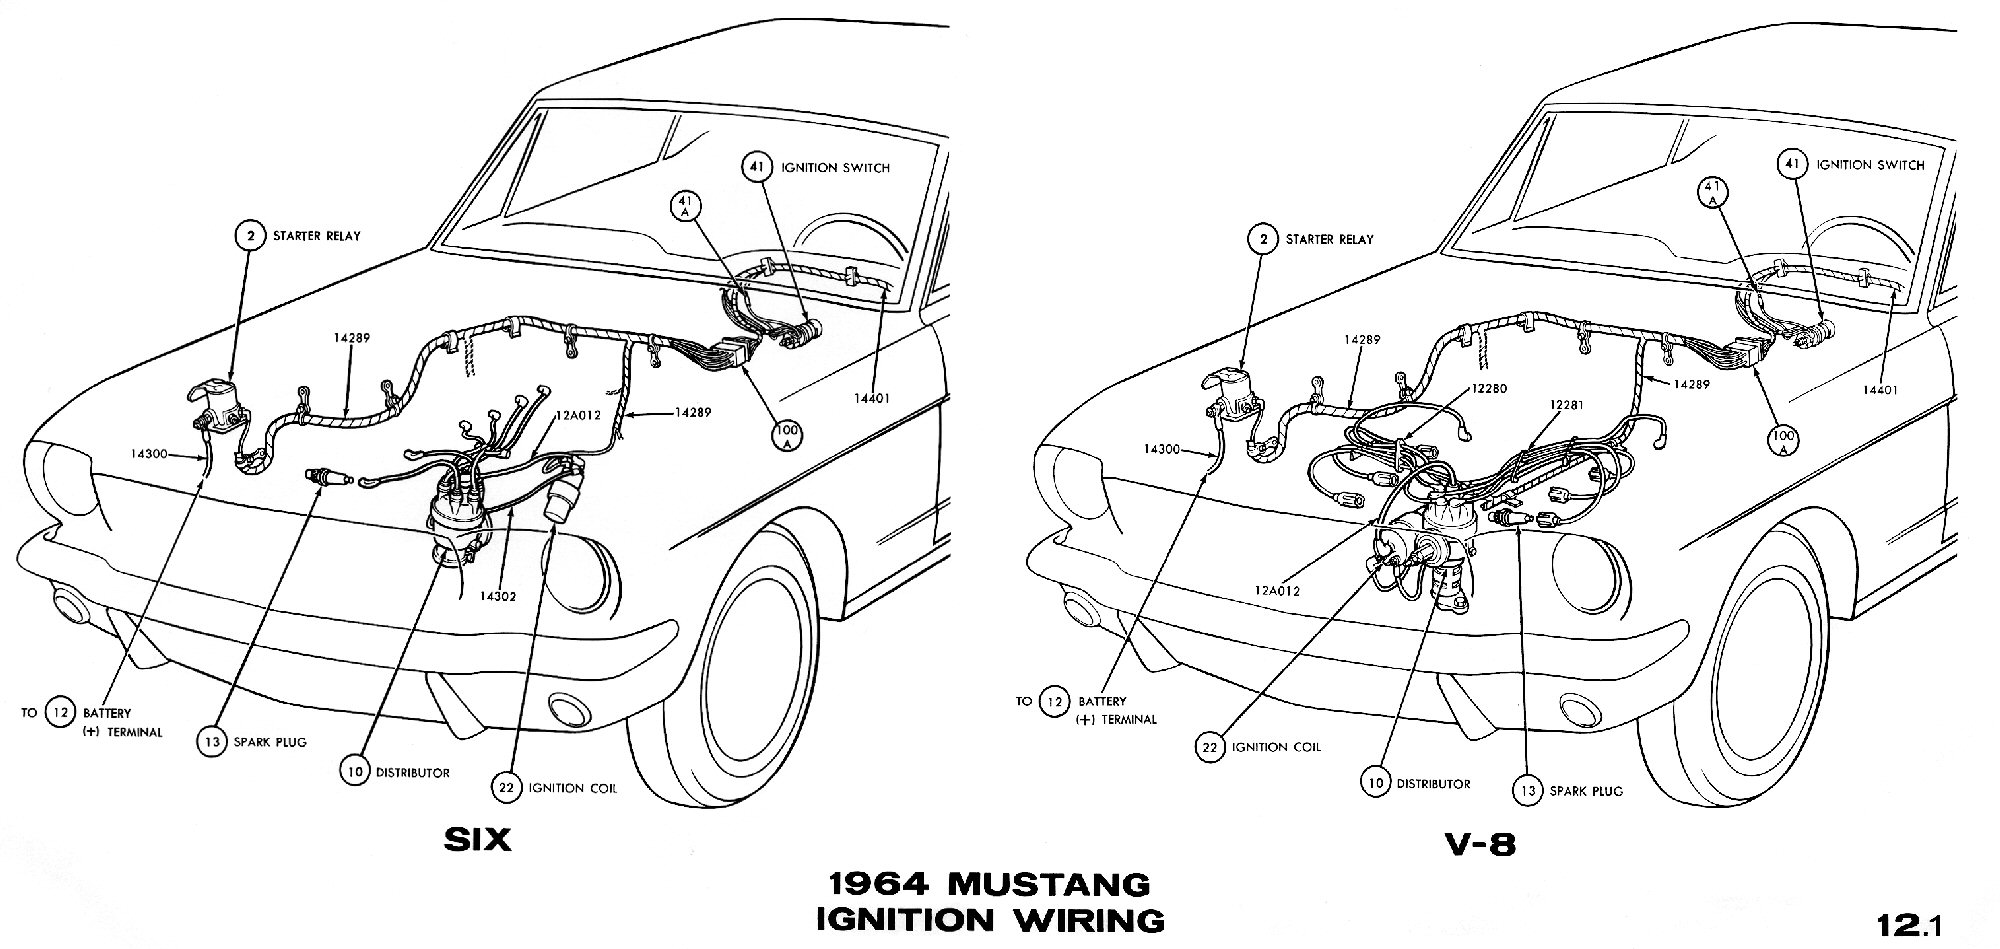 El Ritningar 87 Mustang Wiring Diagram 302 1964 Ignition